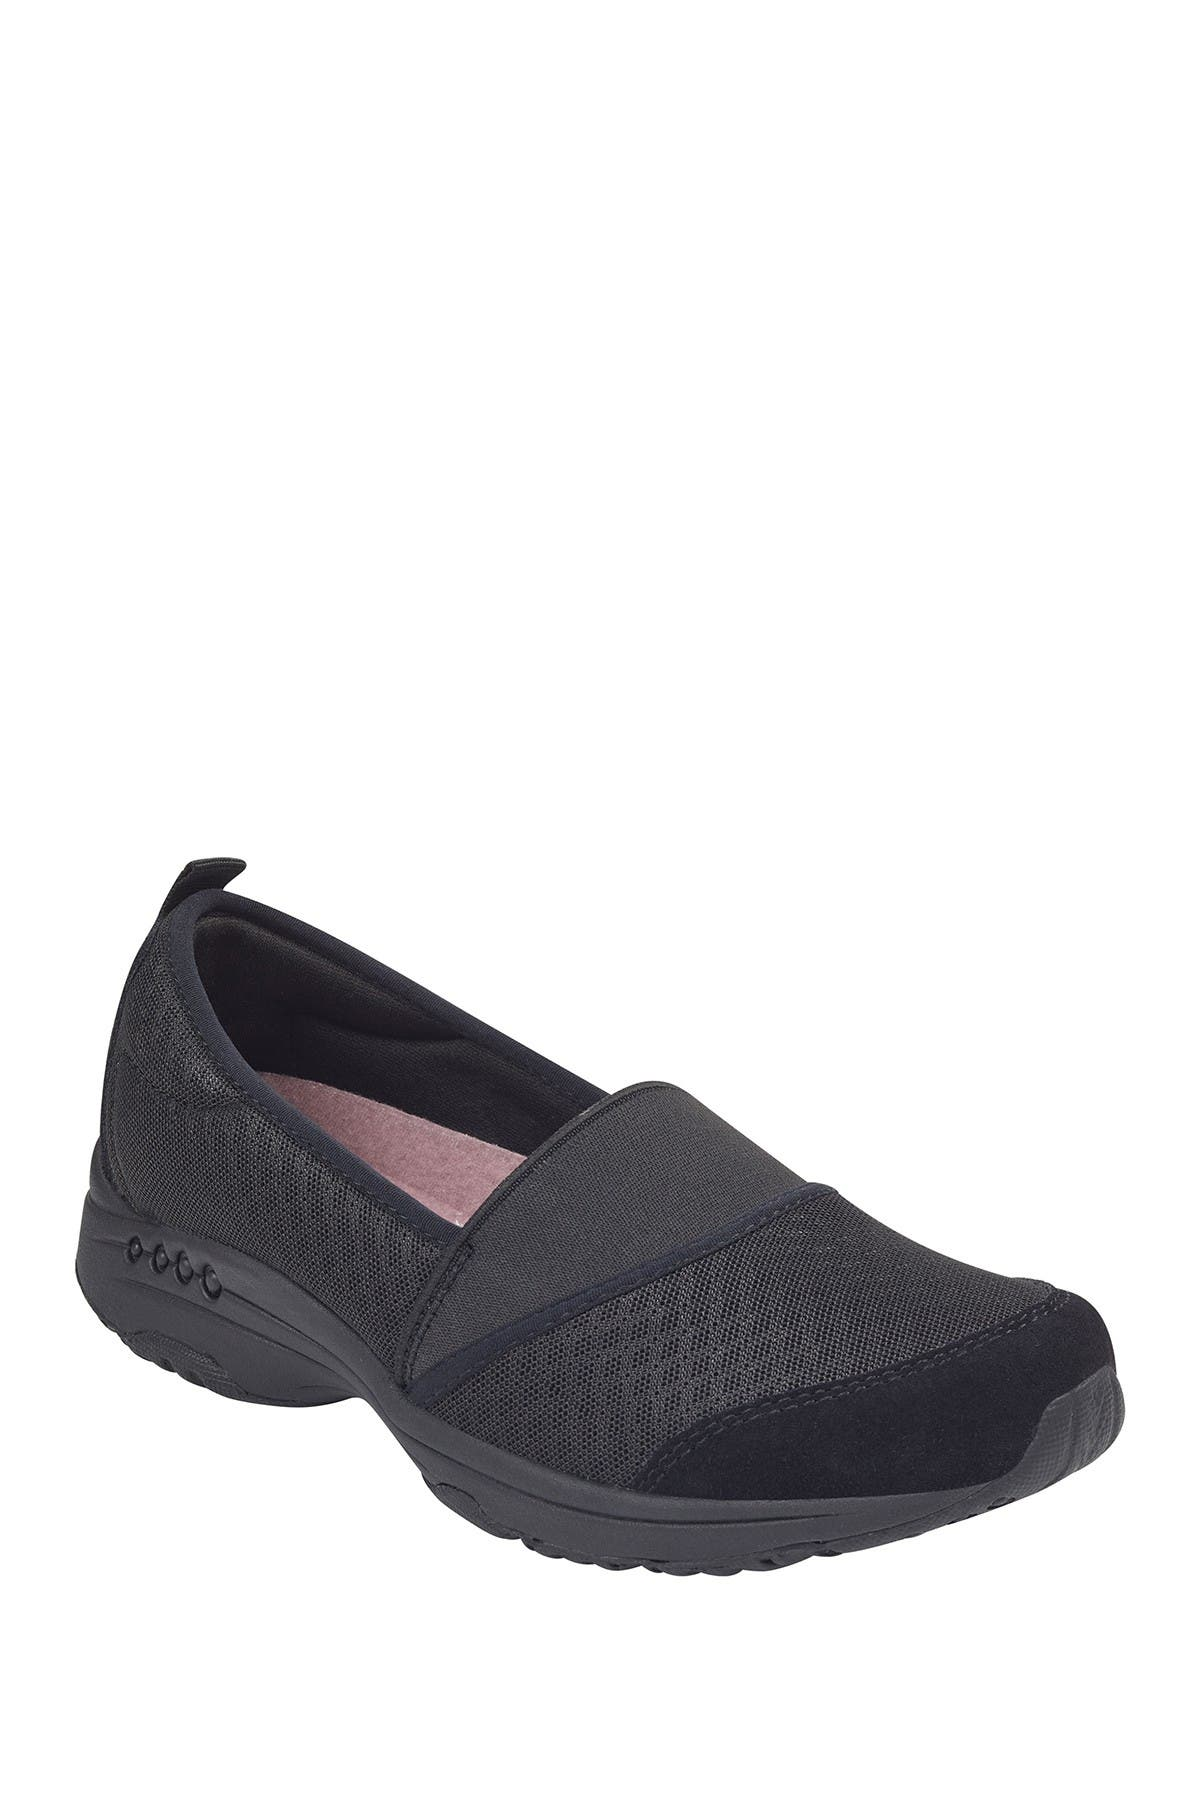 Image of Easy Spirit Twist Slip-On Sneaker